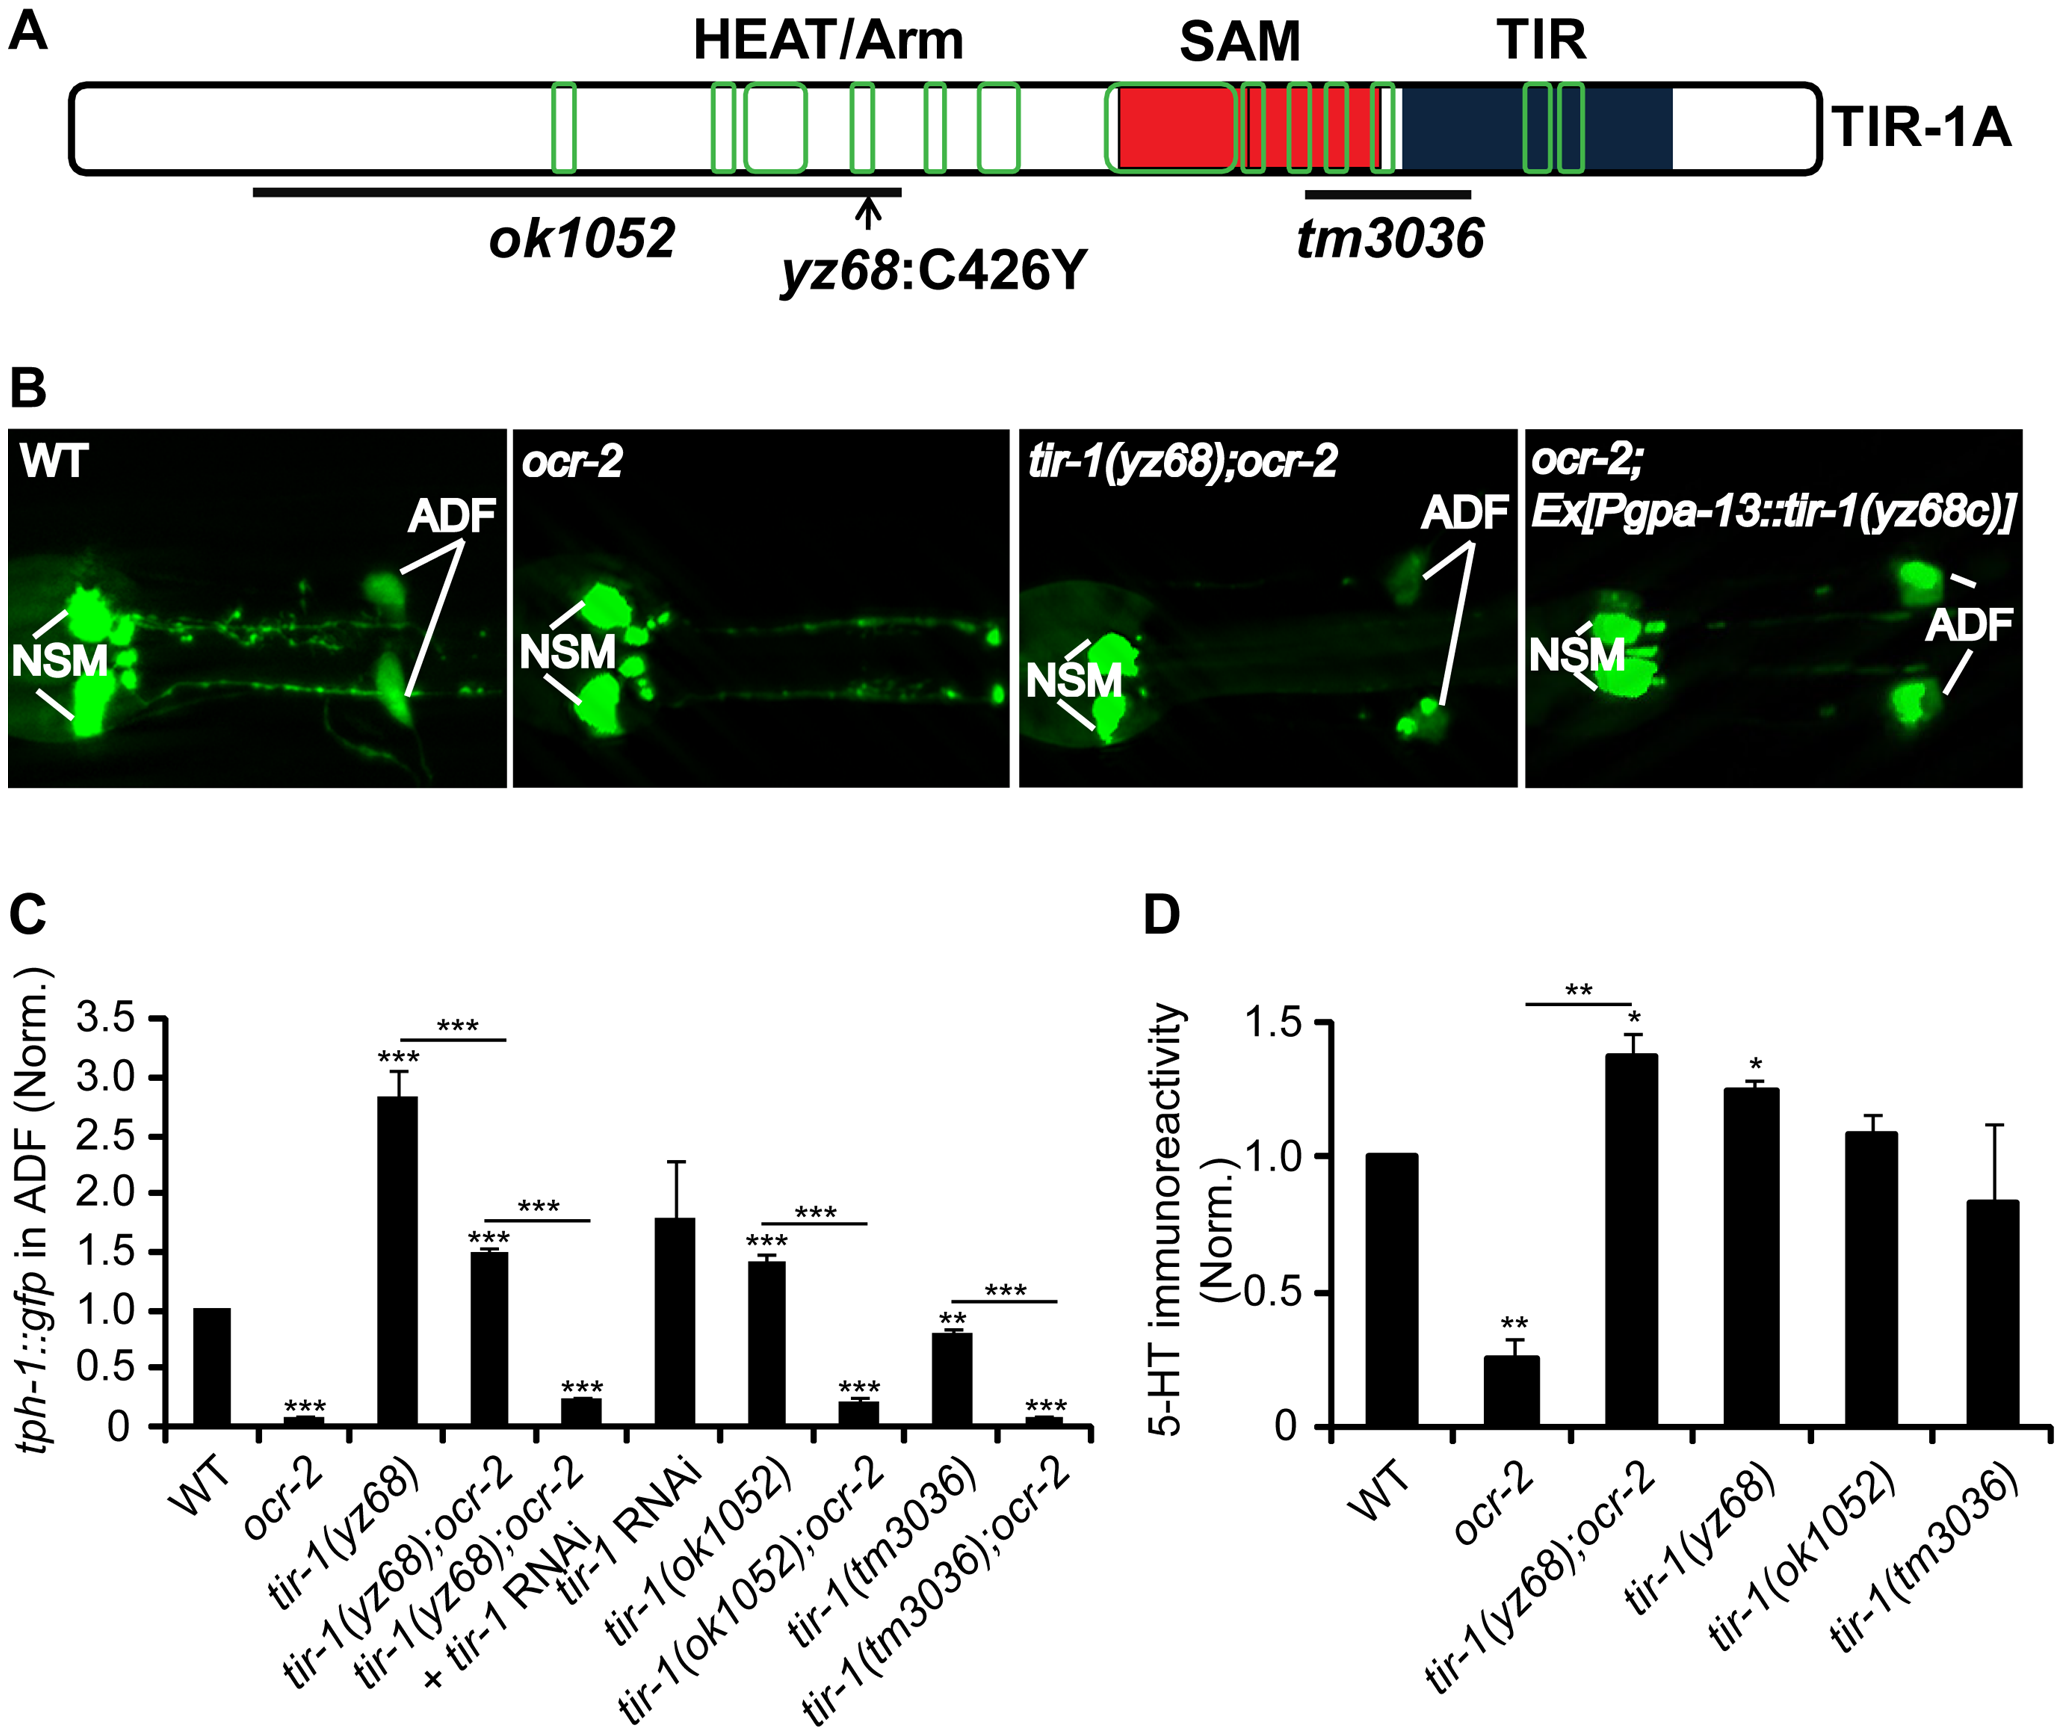 <i>tir-1(yz68gf)</i> mutants constitutively upregulate <i>tph-1::gfp</i> expression in ADF neurons.